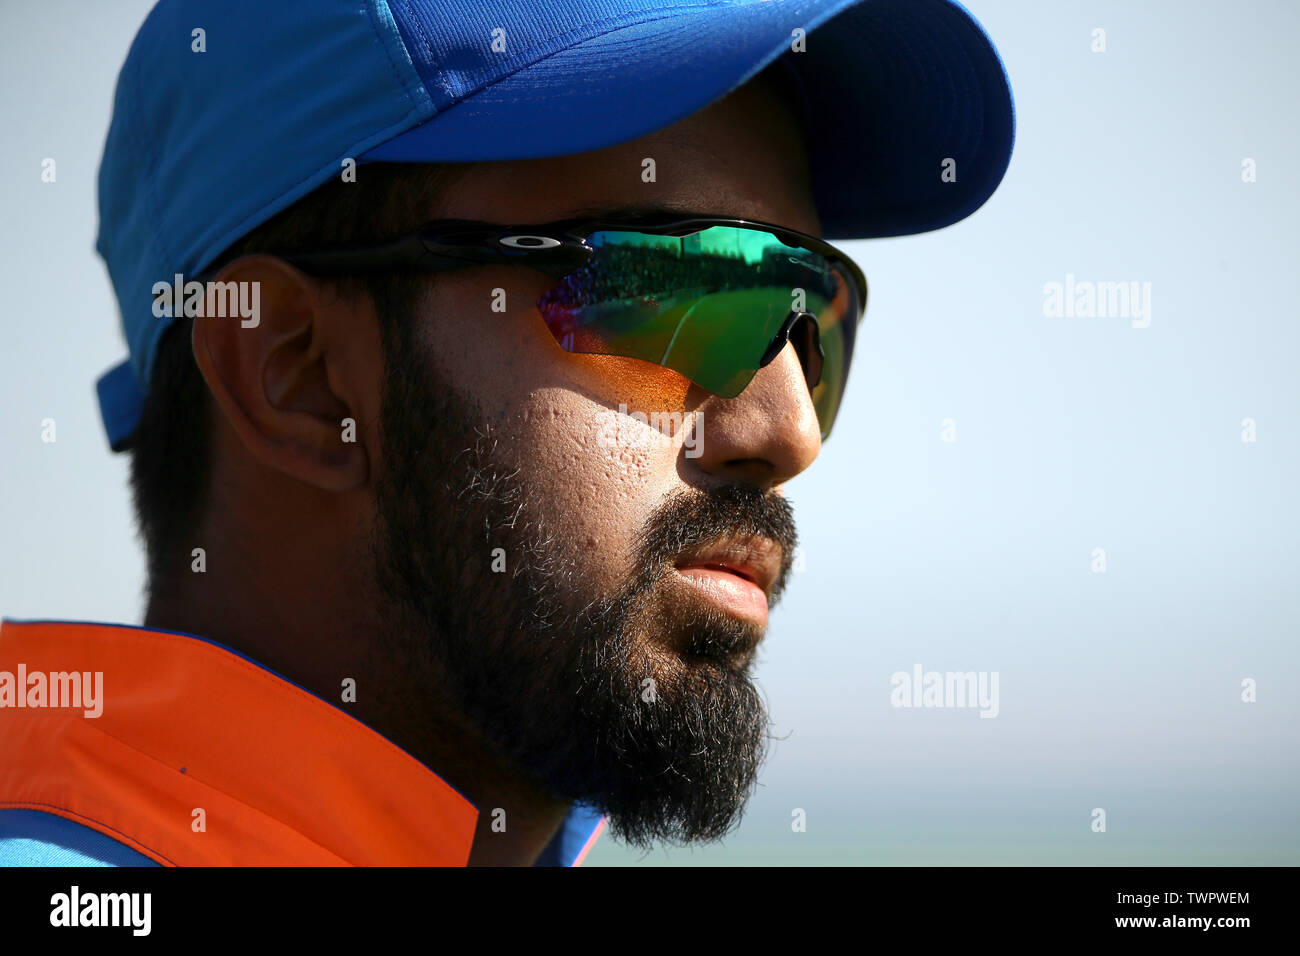 India's KL Rahul during the ICC Cricket World Cup group stage match at the Hampshire Bowl, Southampton. - Stock Image